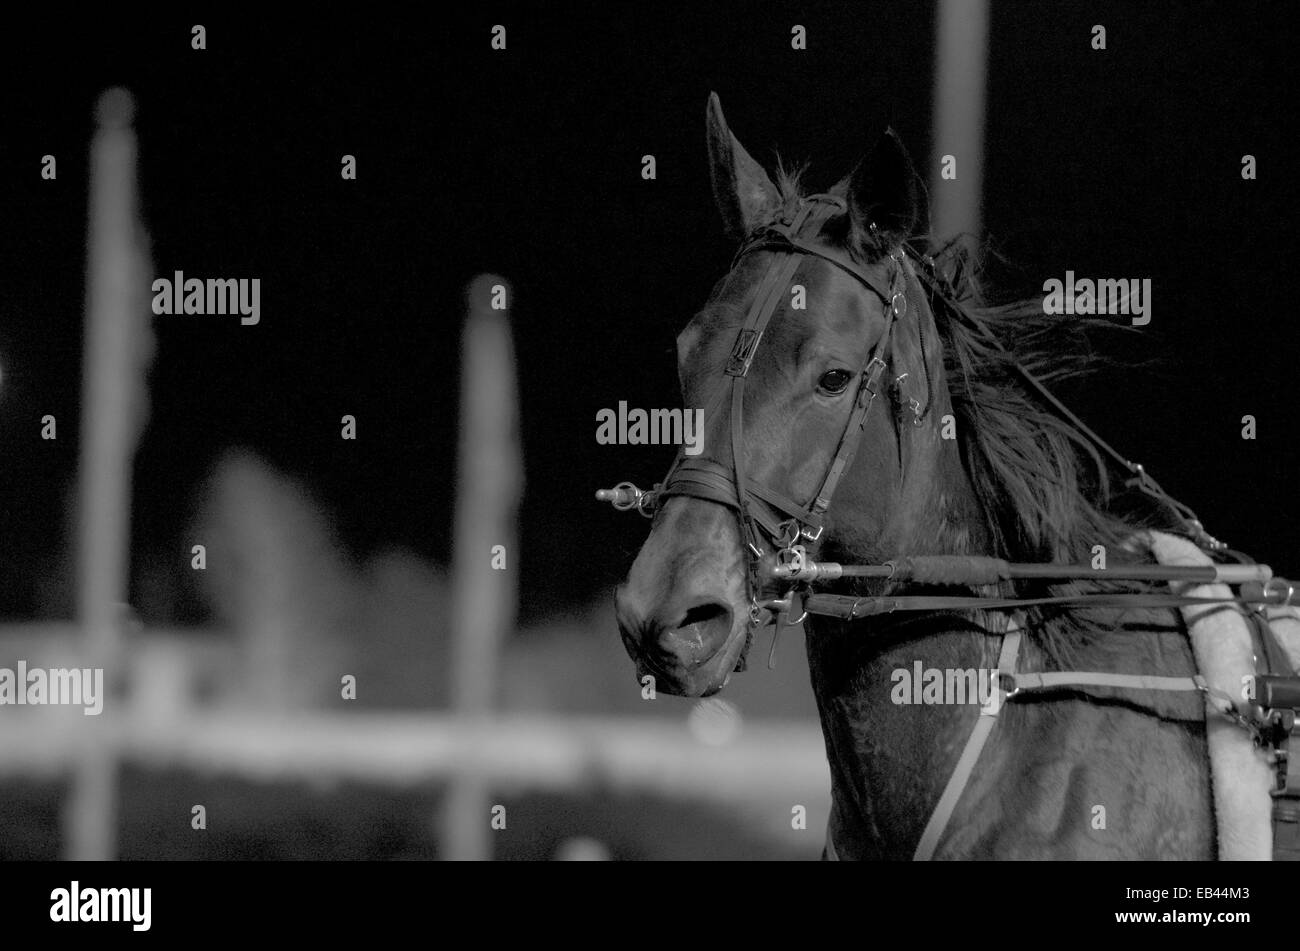 Horse Race at the Meadowlands - Stock Image